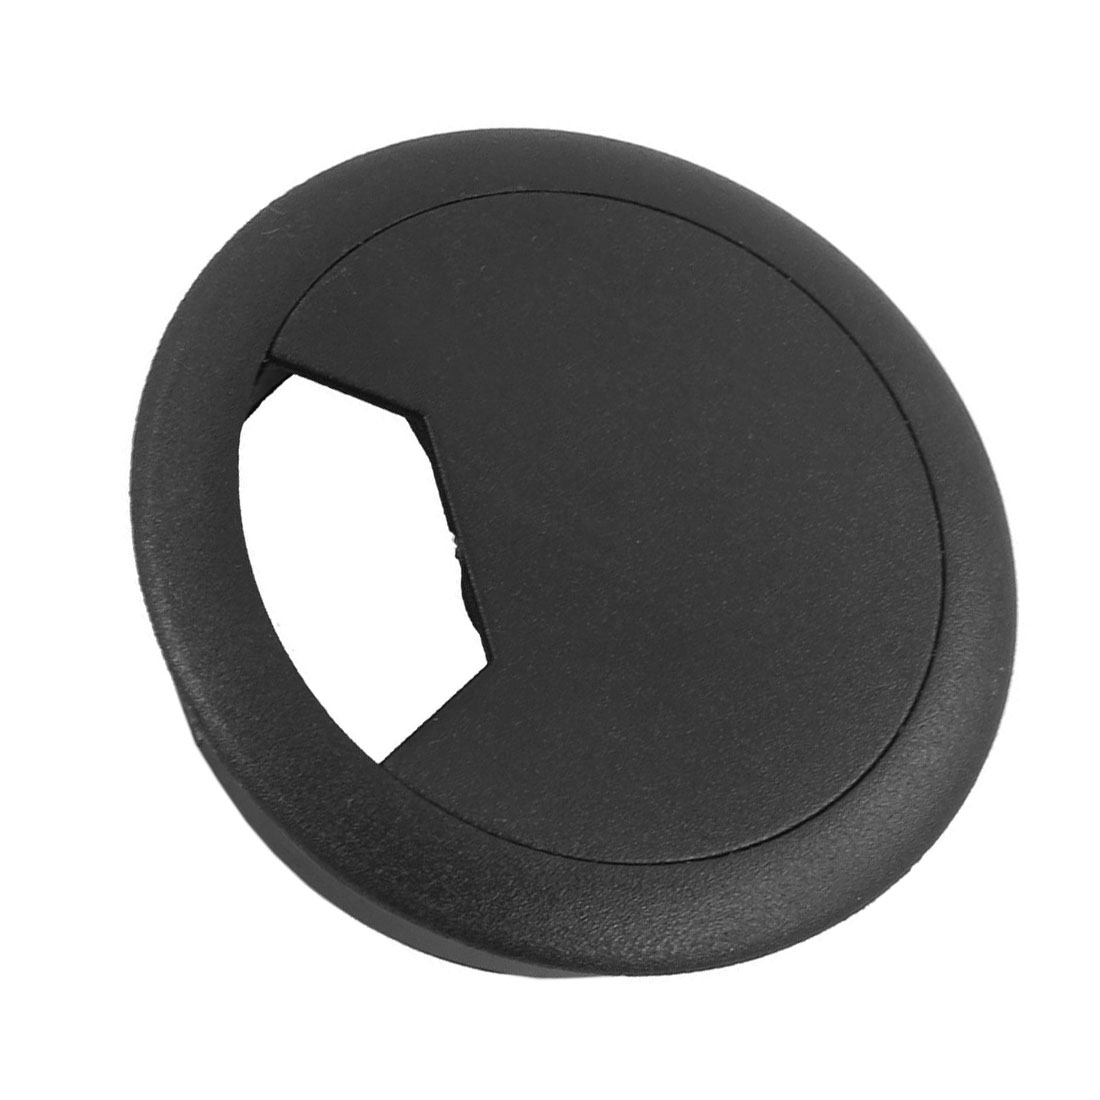 NOCM-2 Pcs 50mm Diameter Desk Wire Cord Cable Grommets Hole Cover BlackNOCM-2 Pcs 50mm Diameter Desk Wire Cord Cable Grommets Hole Cover Black